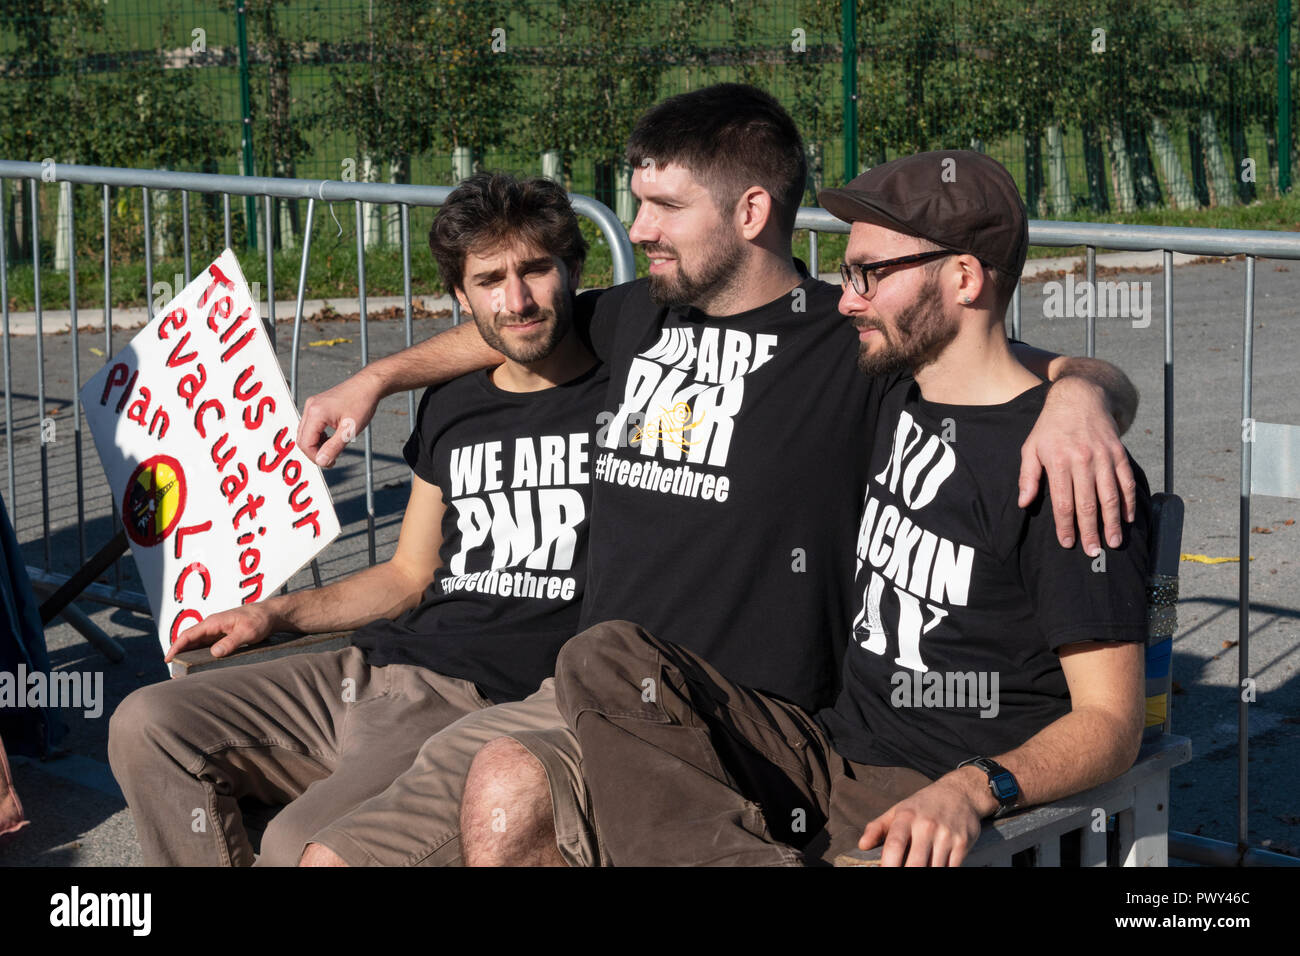 Blackpool. UK, 18th Oct. 2018. Three anti-fracking campaigners who were released from Preston jail after their successful appeal against their prison sentences visited the controversial Cuadrilla exploratory shale gas site and issued their press release to the gathered media. Credit: Dave Ellison/Alamy Live News - Stock Image